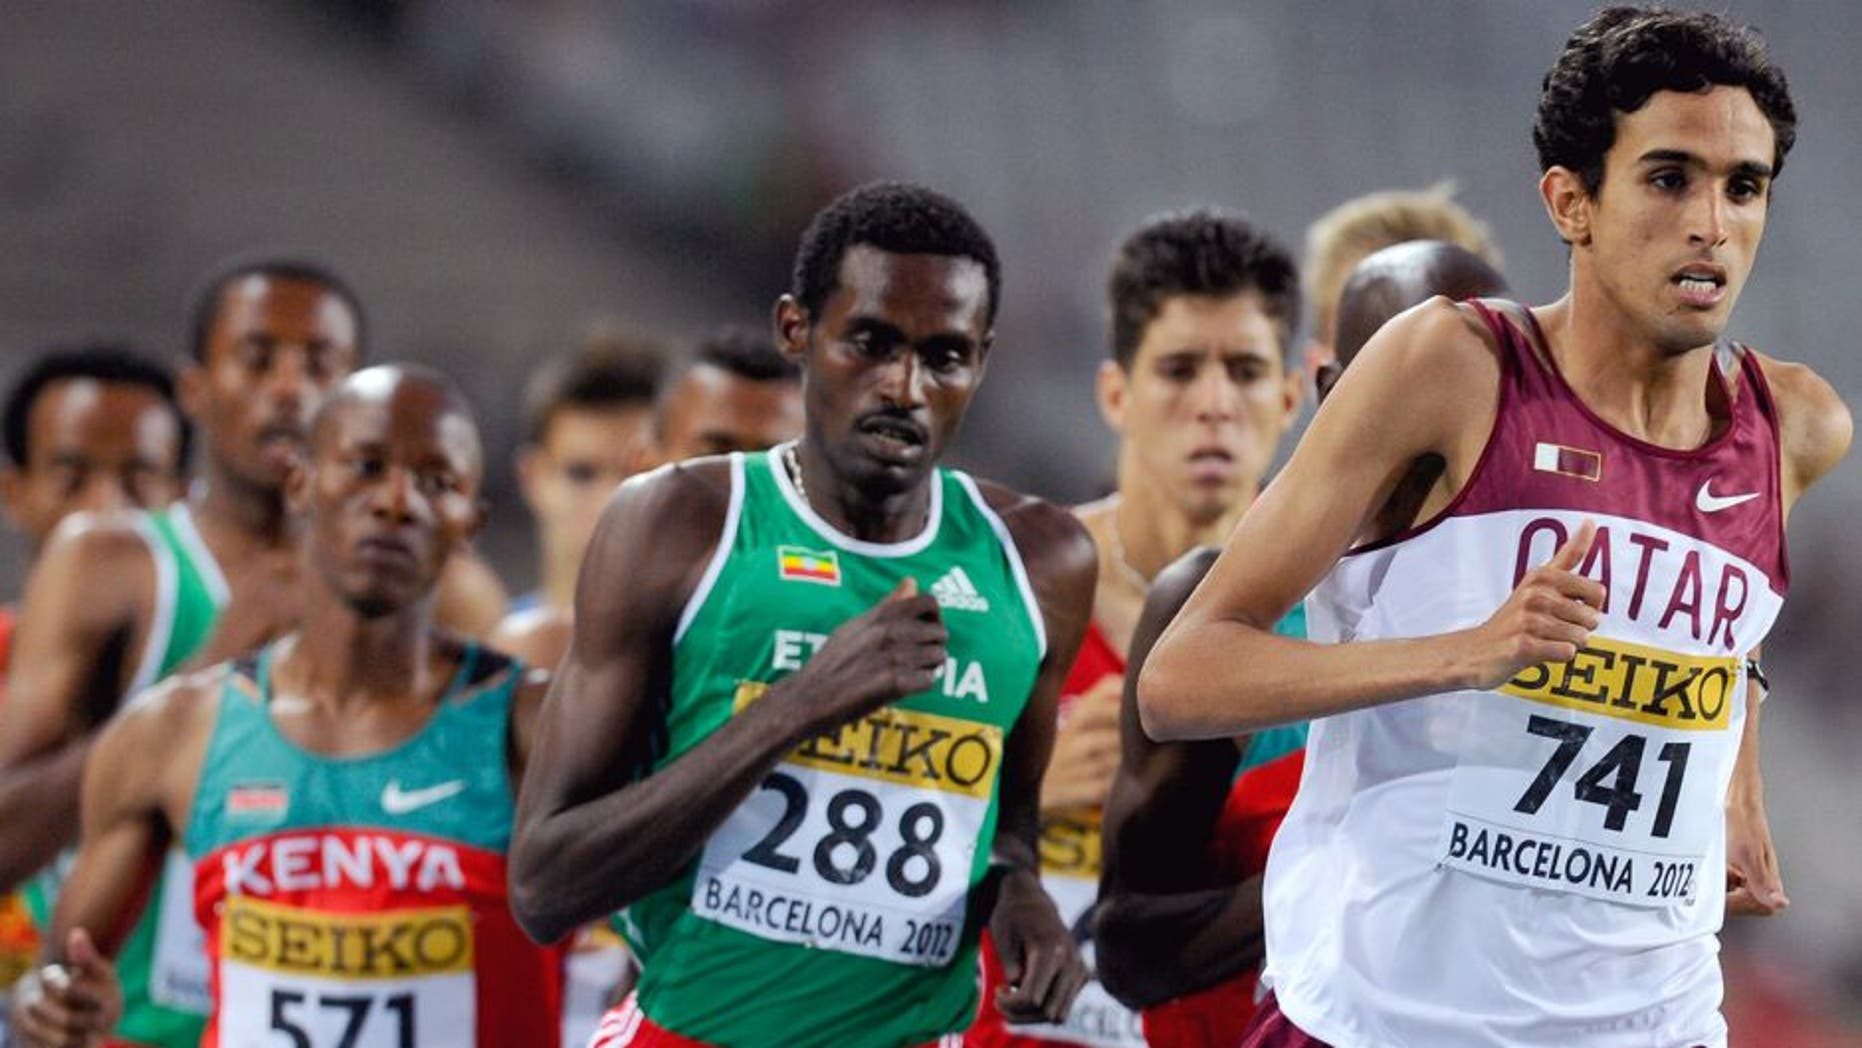 BARCELONA, SPAIN - JULY 12: Hamza Driouch of Qater leads the Men's 1500 metres Final on the day three of the 14th IAAF World Junior Championships at Estadi Olimpic Lluis Companys on July 12, 2012 in Barcelona, Spain. (Photo by David Ramos/Getty Images)